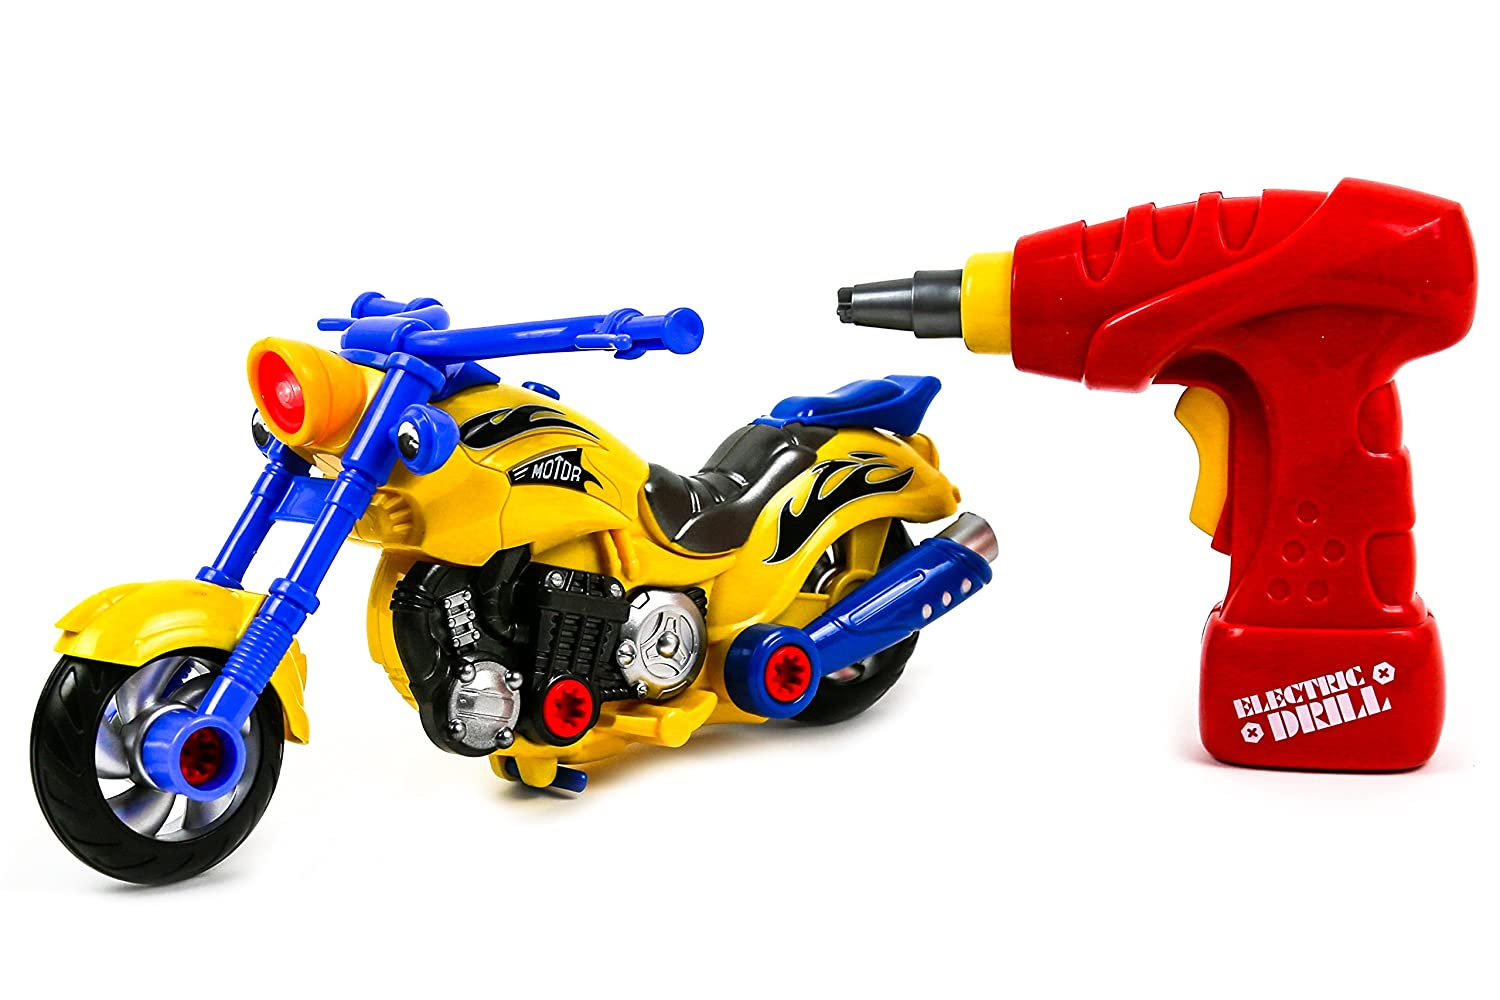 Cheap Educational Toys : Cheap toysery educational take a part motorcycle toys for kids with